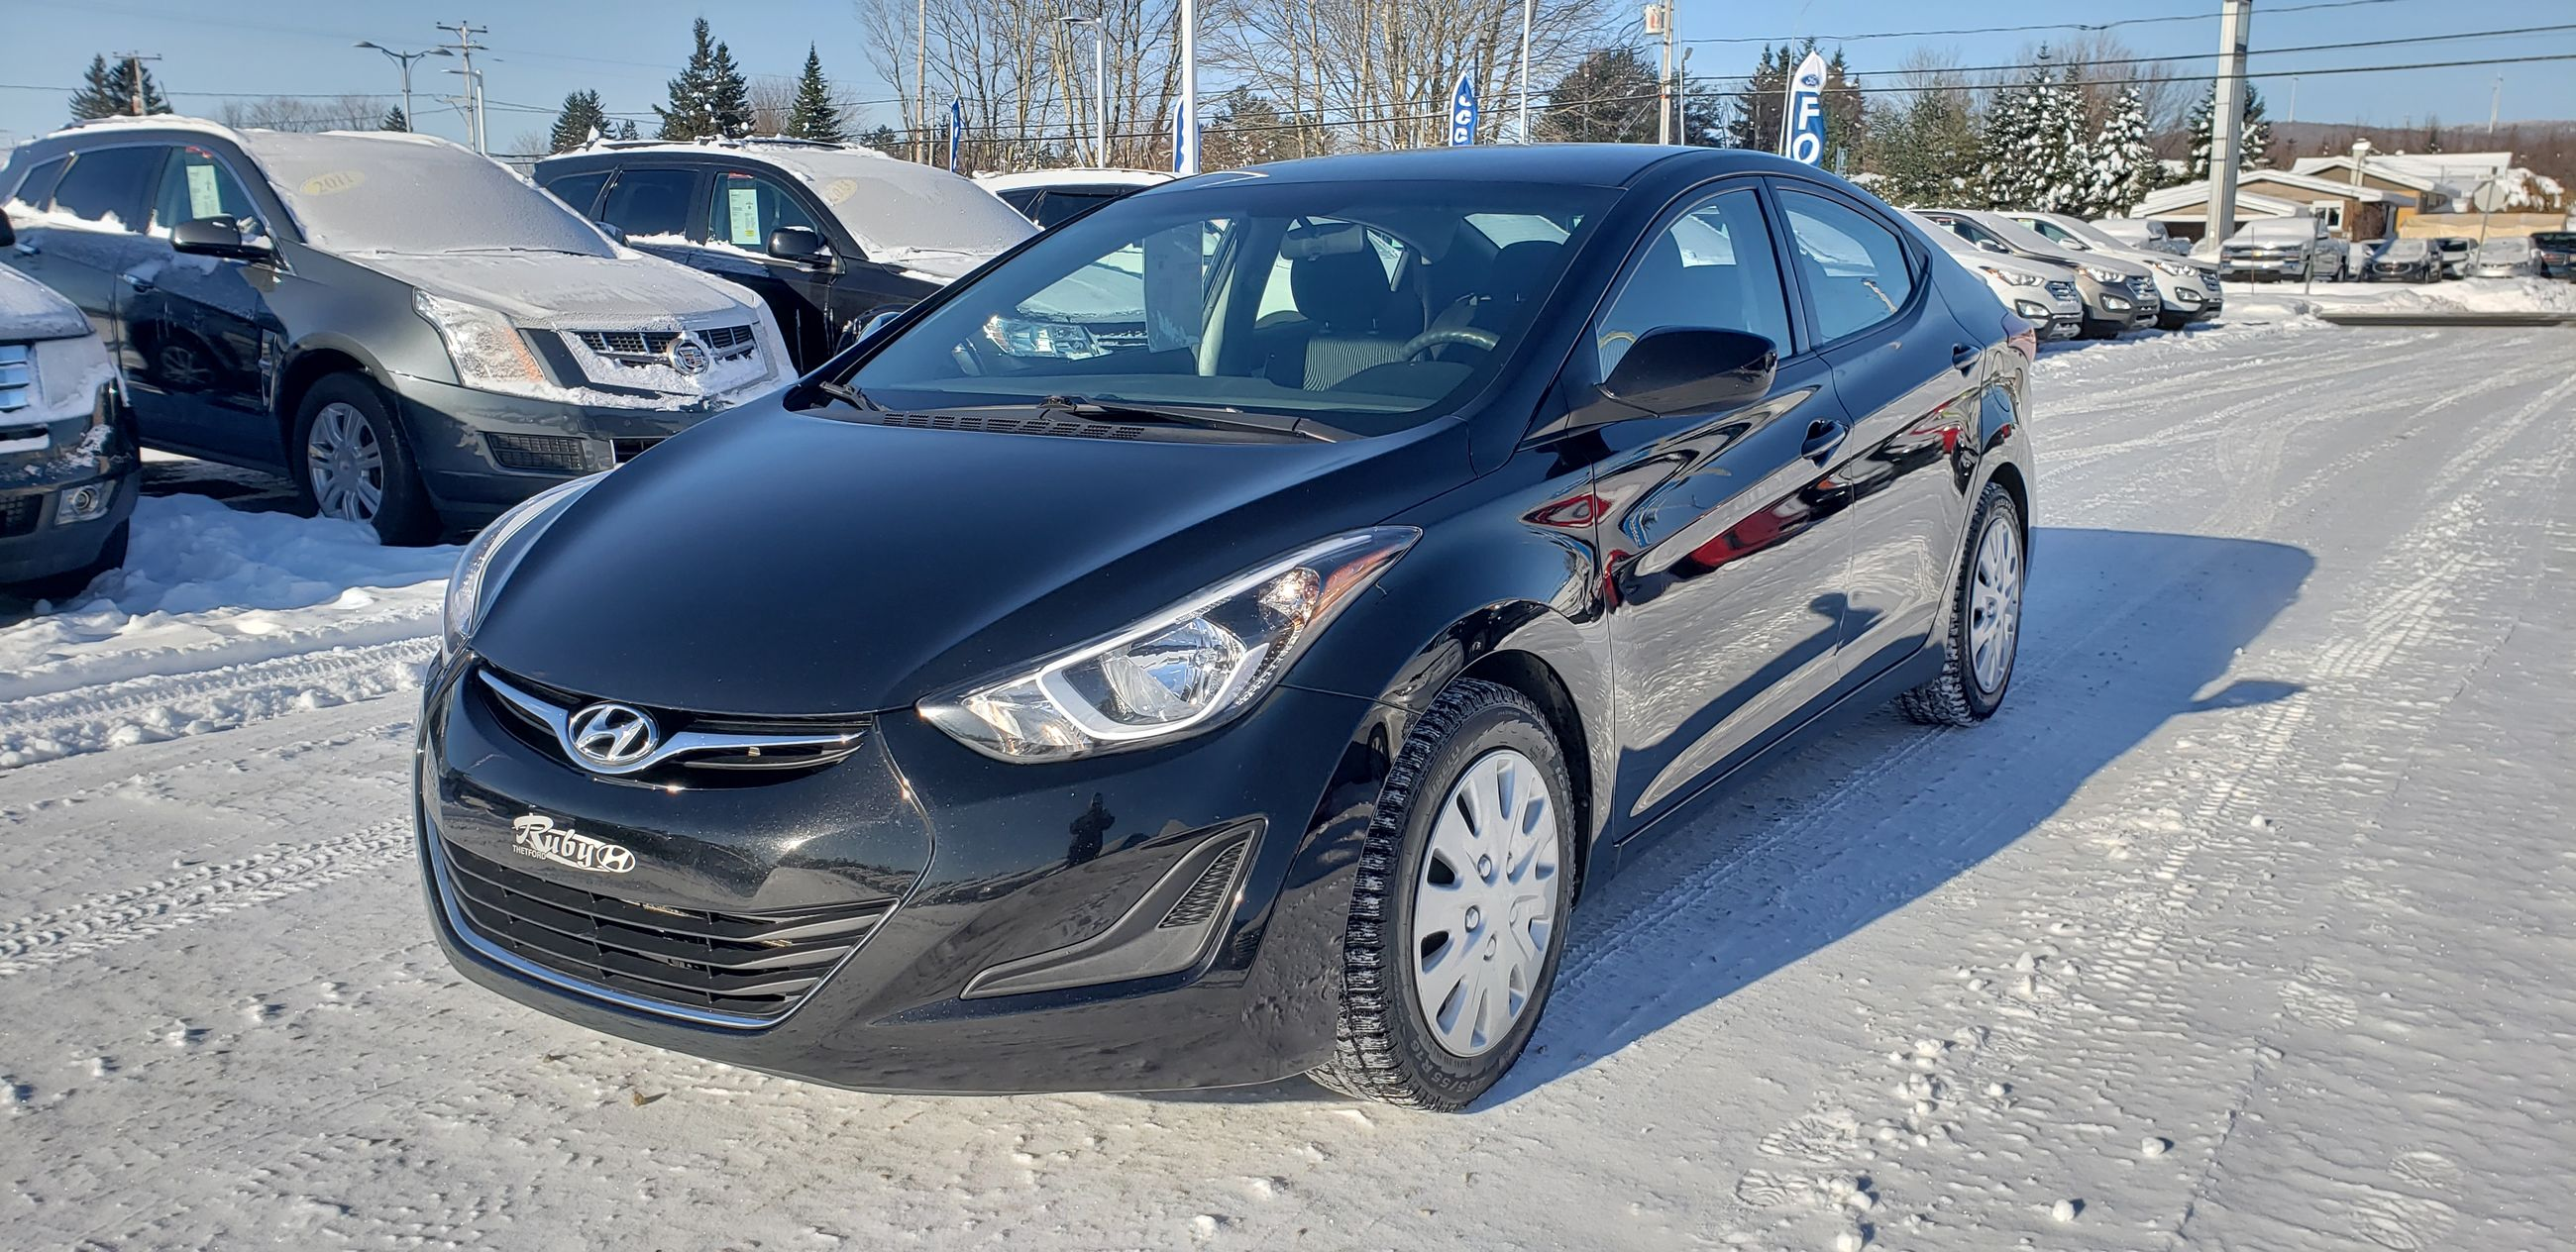 Used 2015 Hyundai Elantra GL, BLUETOOTH, DÉMARREUR À DISTANCE, AIR in  Thetford Mines - Used inventory - Ruby Hyundai in Thetford Mines, Quebec